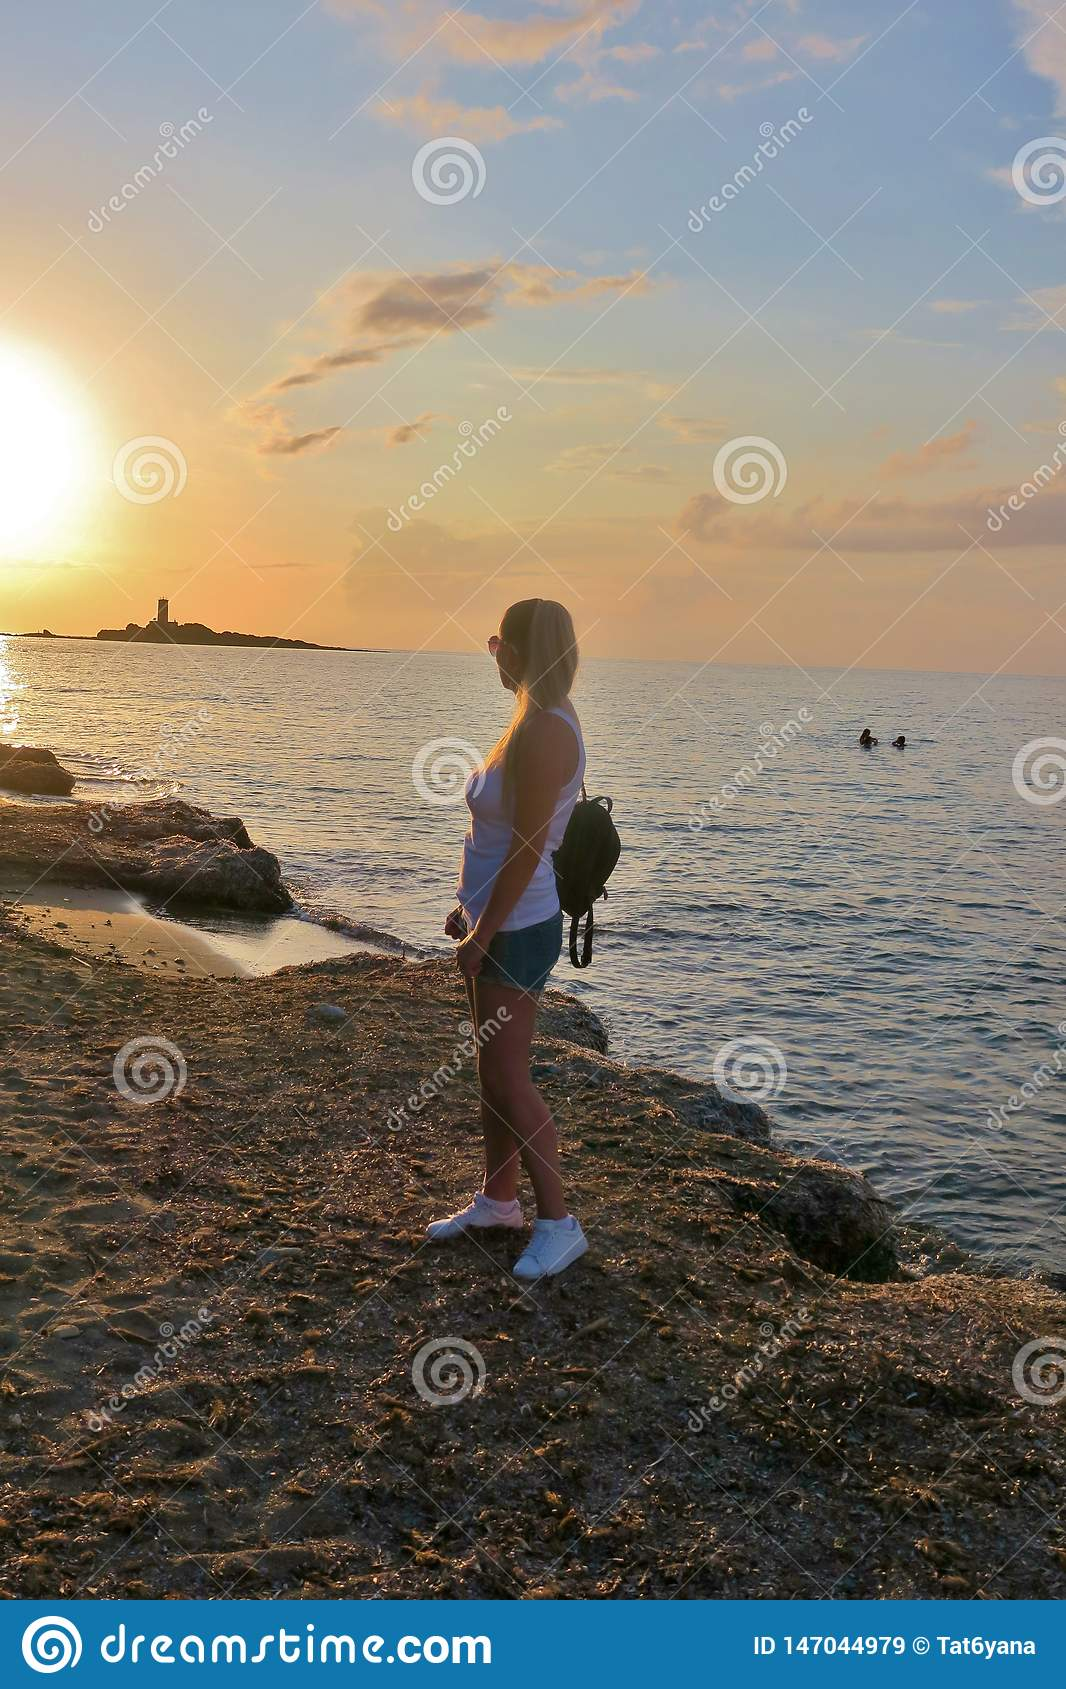 Girl stands on the seashore and looks at the beautiful sunset